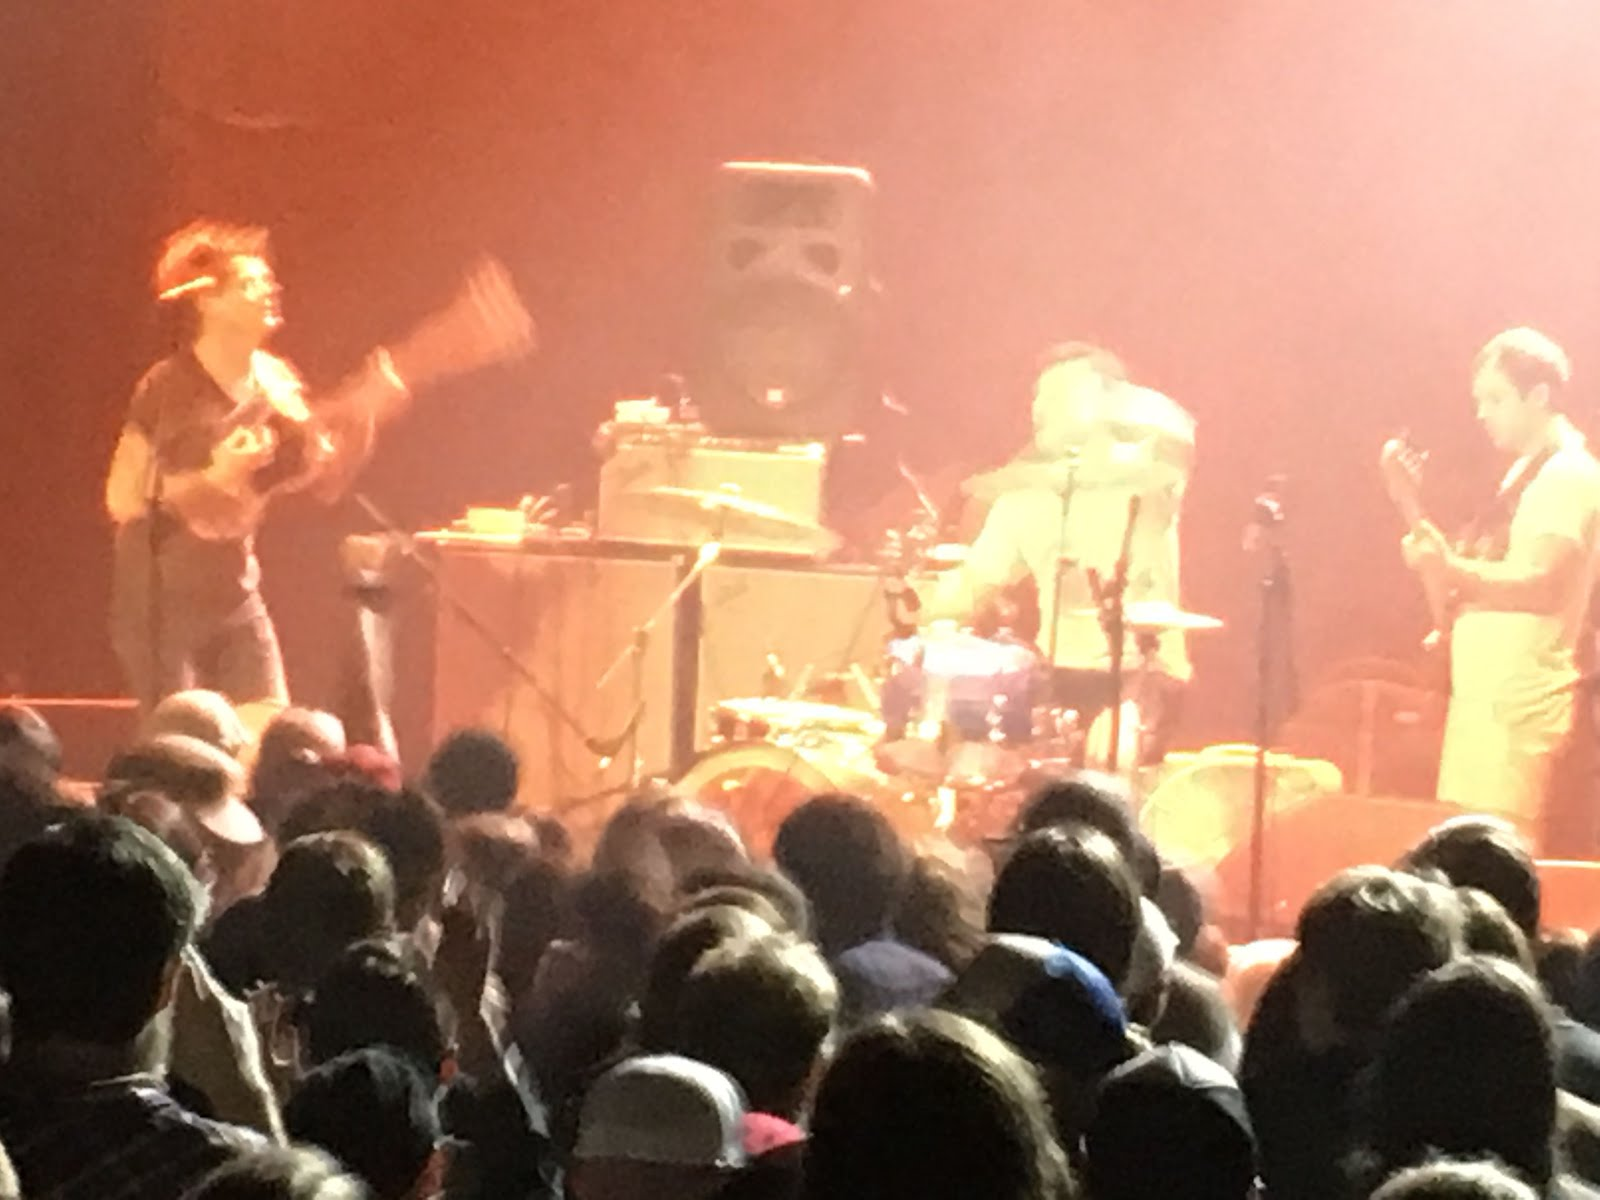 Went to see Thee Oh Sees last night at the sold out Revolution Hall.